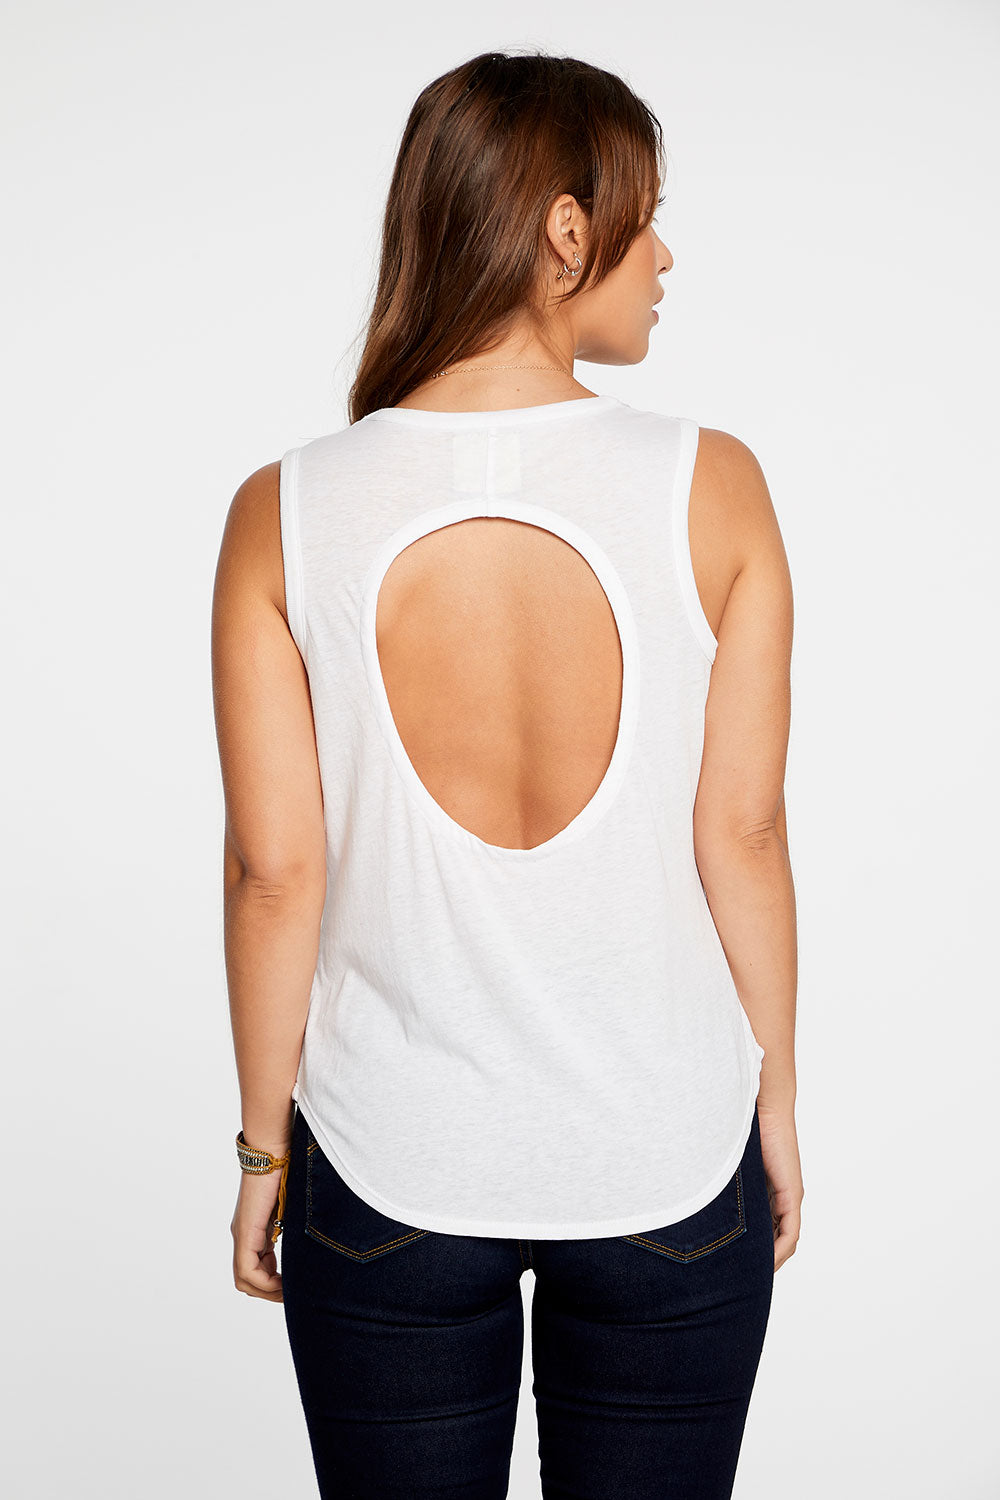 Recycled Vintage Jersey Open Back Shirttail Muscle in White WOMENS chaserbrand4.myshopify.com